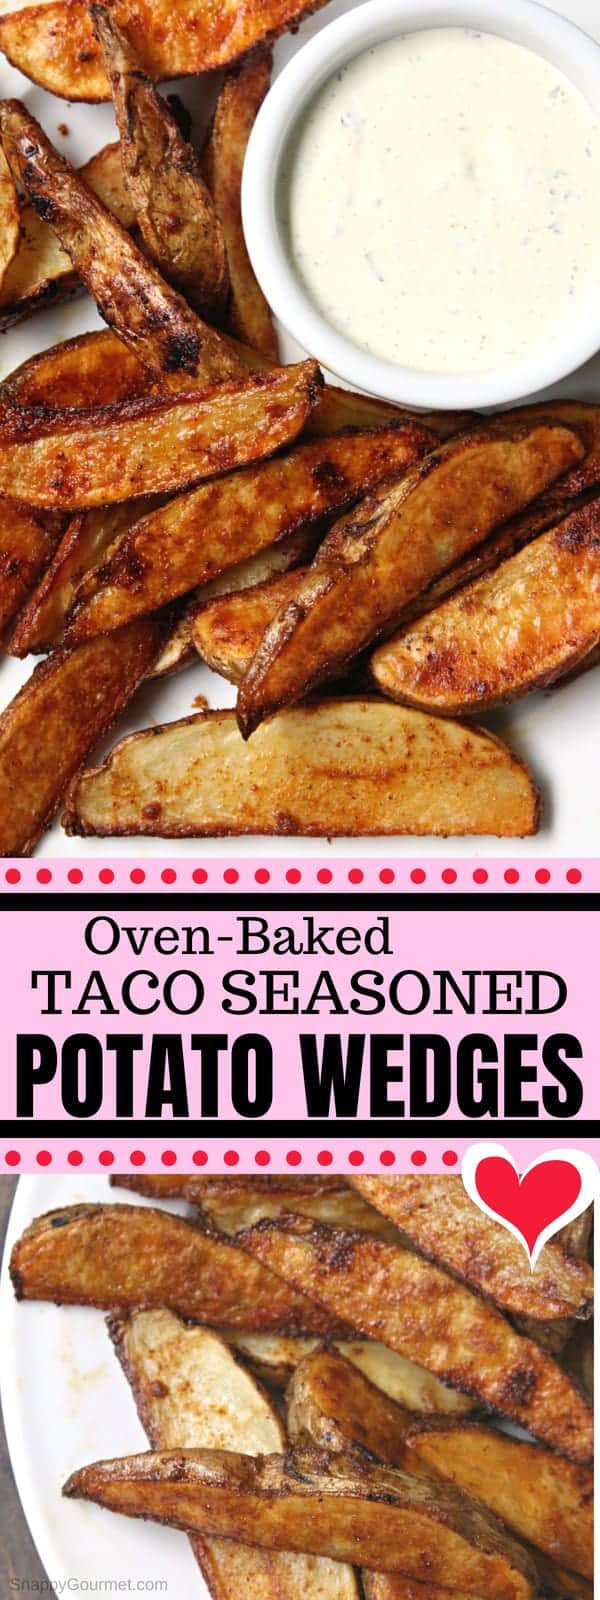 Oven Baked Potato Wedges - easy homemade potato wedges recipe with taco seasoning